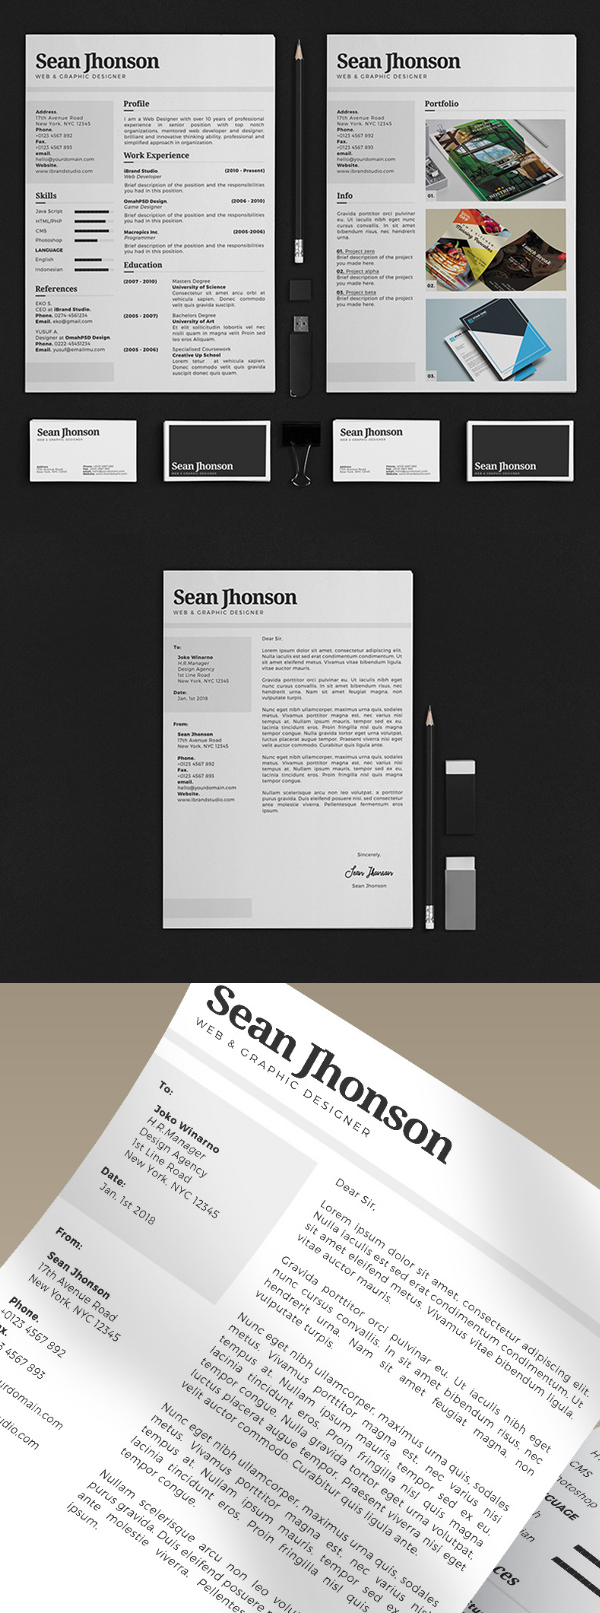 50 Free Resume Templates: Best Of 2018 -  25